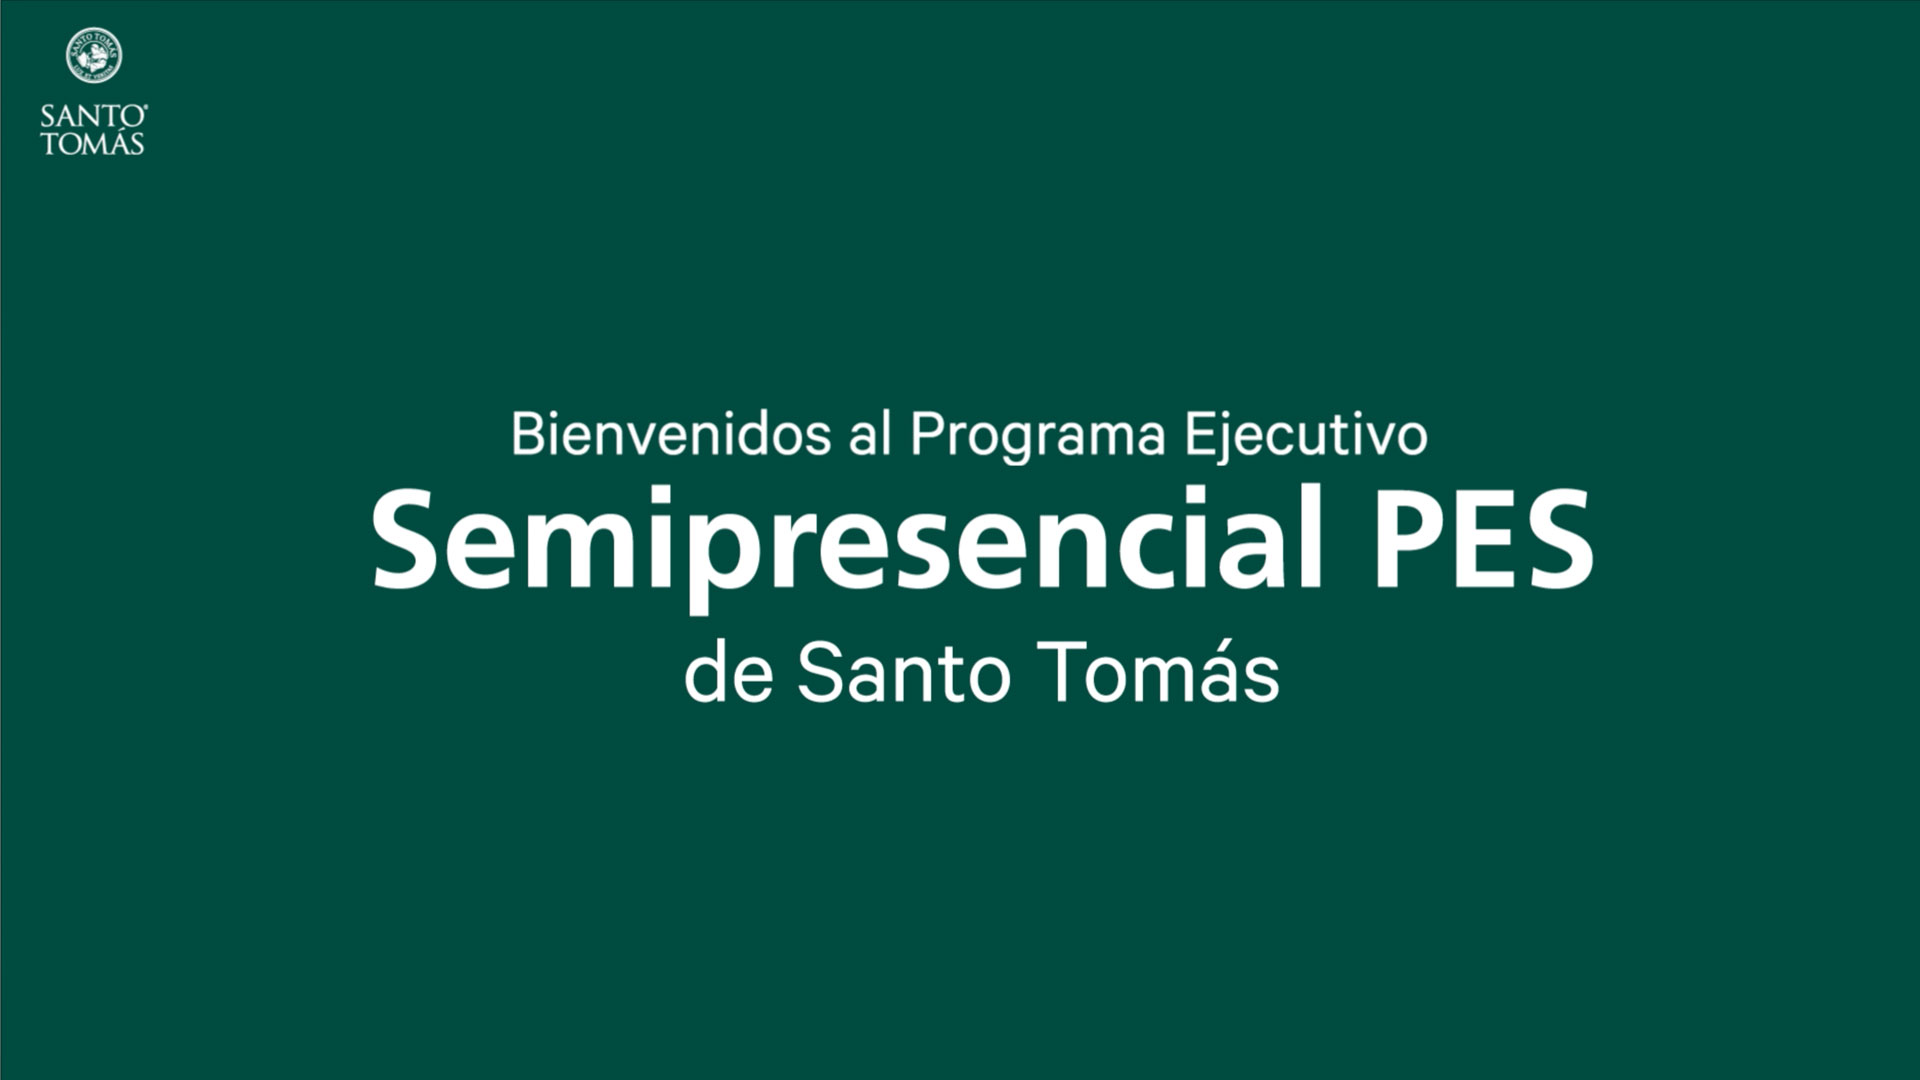 santo-tomas-pes1-captura-video-01